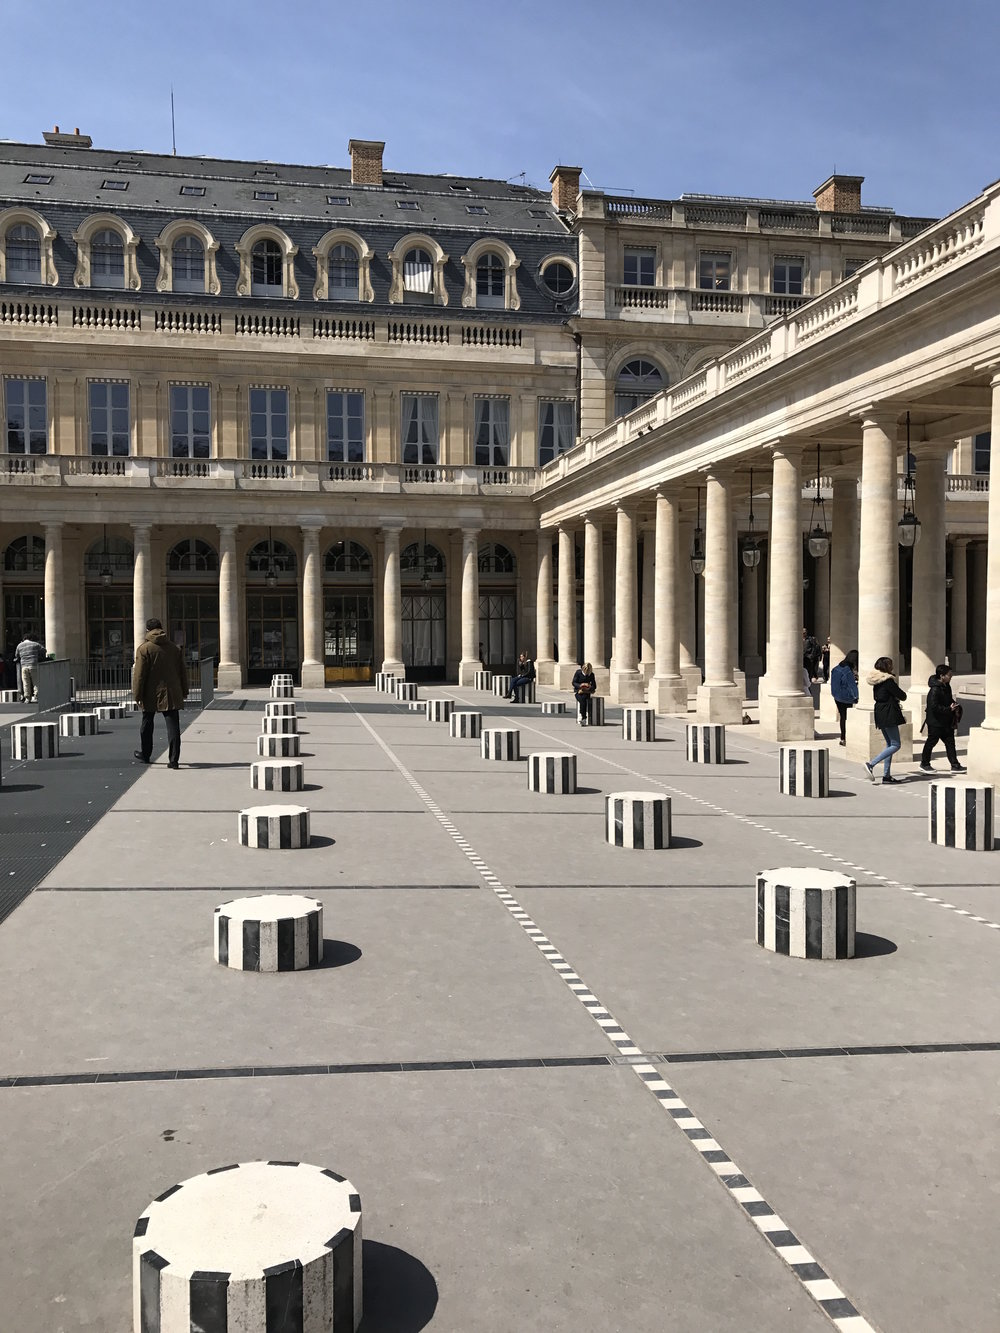 Grand hotel du palais royal paris black tomato - There Are Black And White Striped Columns That Allow People To Stand Upon And Also Gorgeously Manicured Tree Lined Walkways